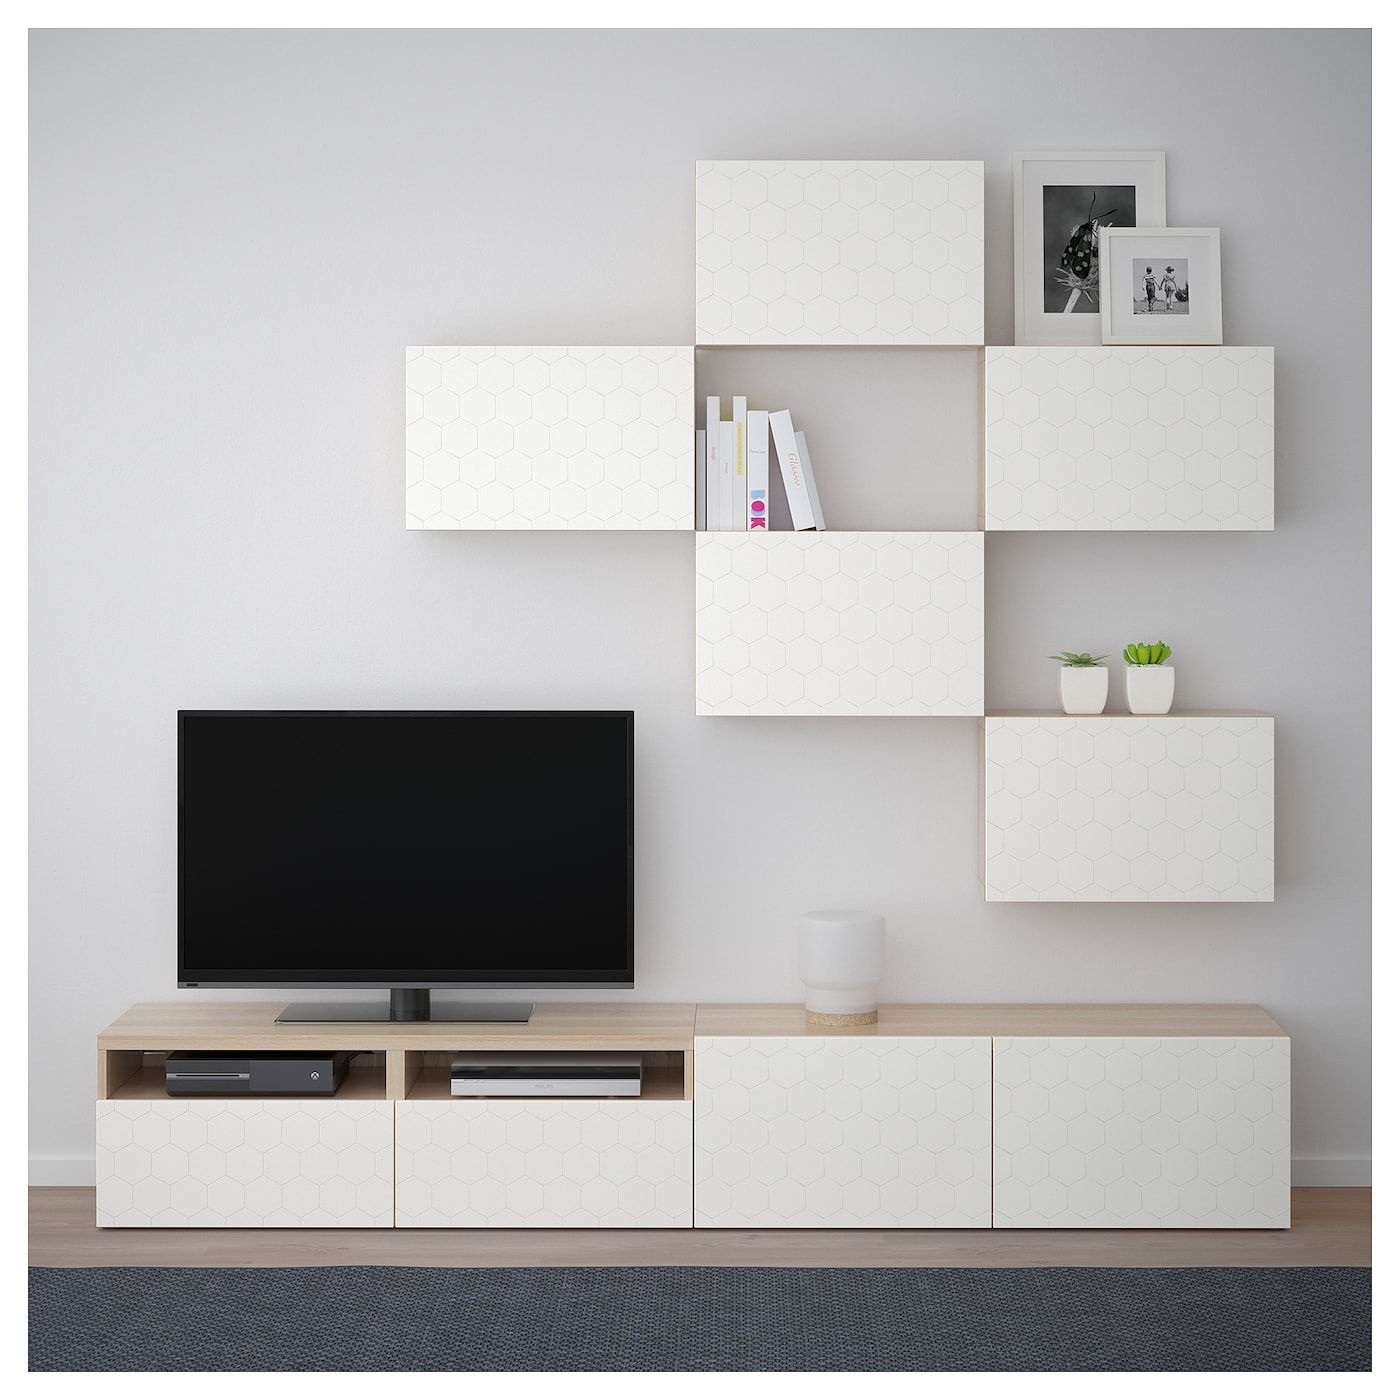 Besta Tv Meubel Combinatie.Besta Tv Meubel Combinatie Eikeneffect Wit Vassviken Wit